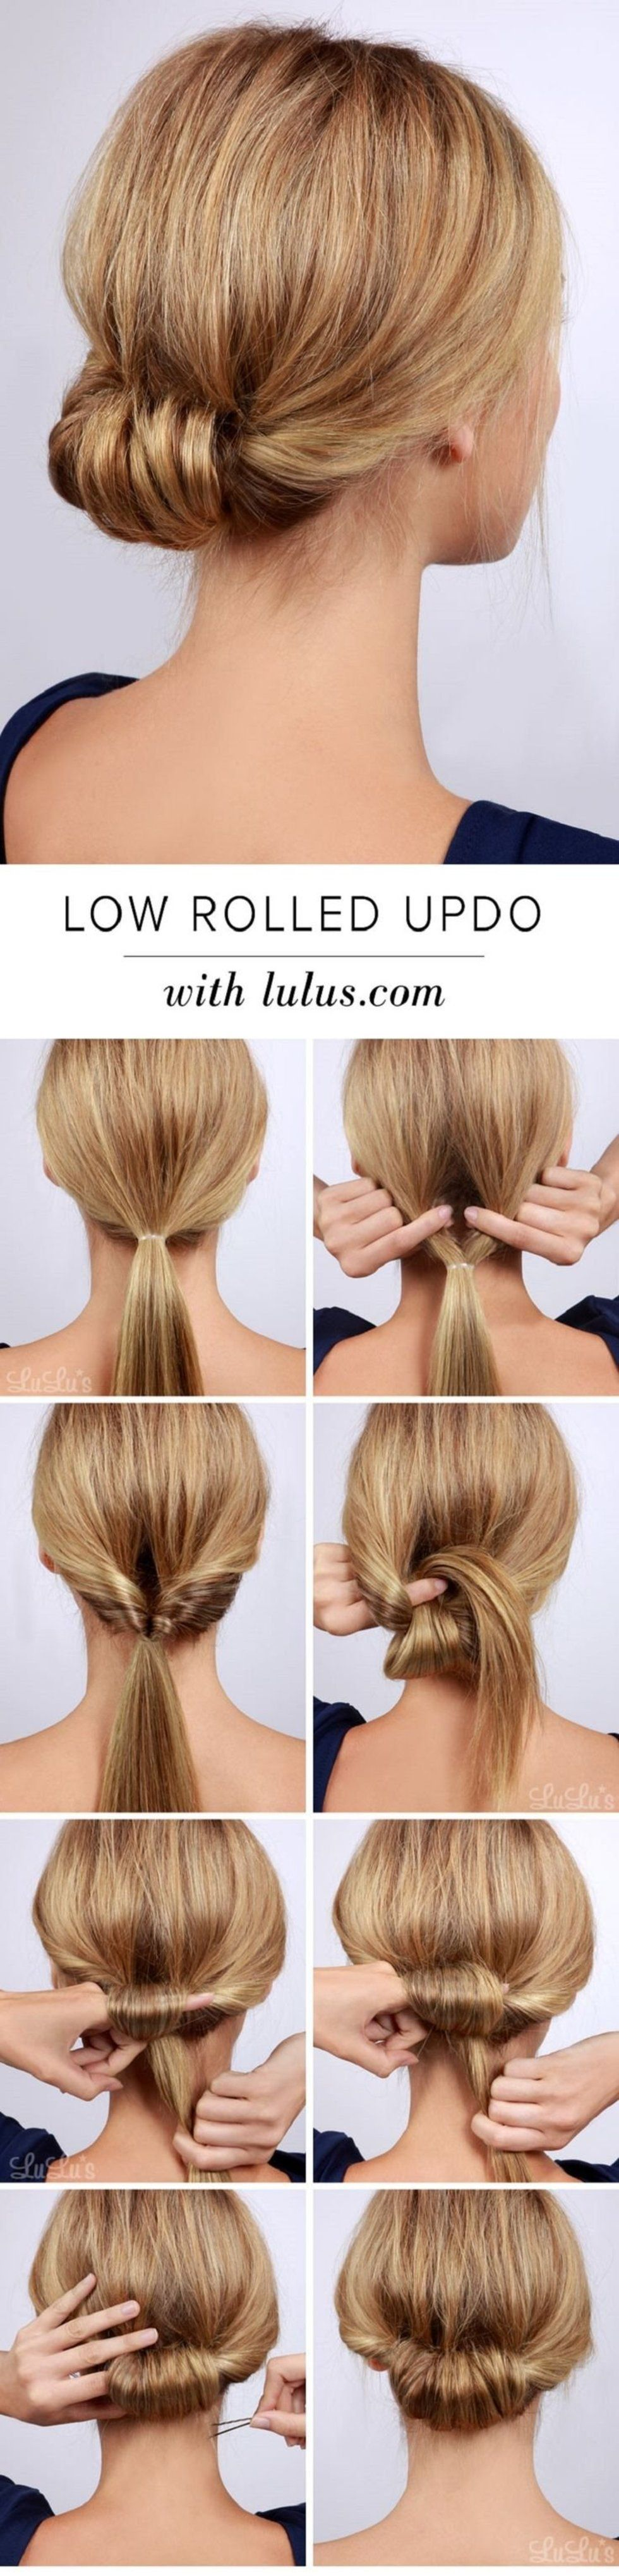 Chignon Hairstyle Tutorial - A sweet chignon